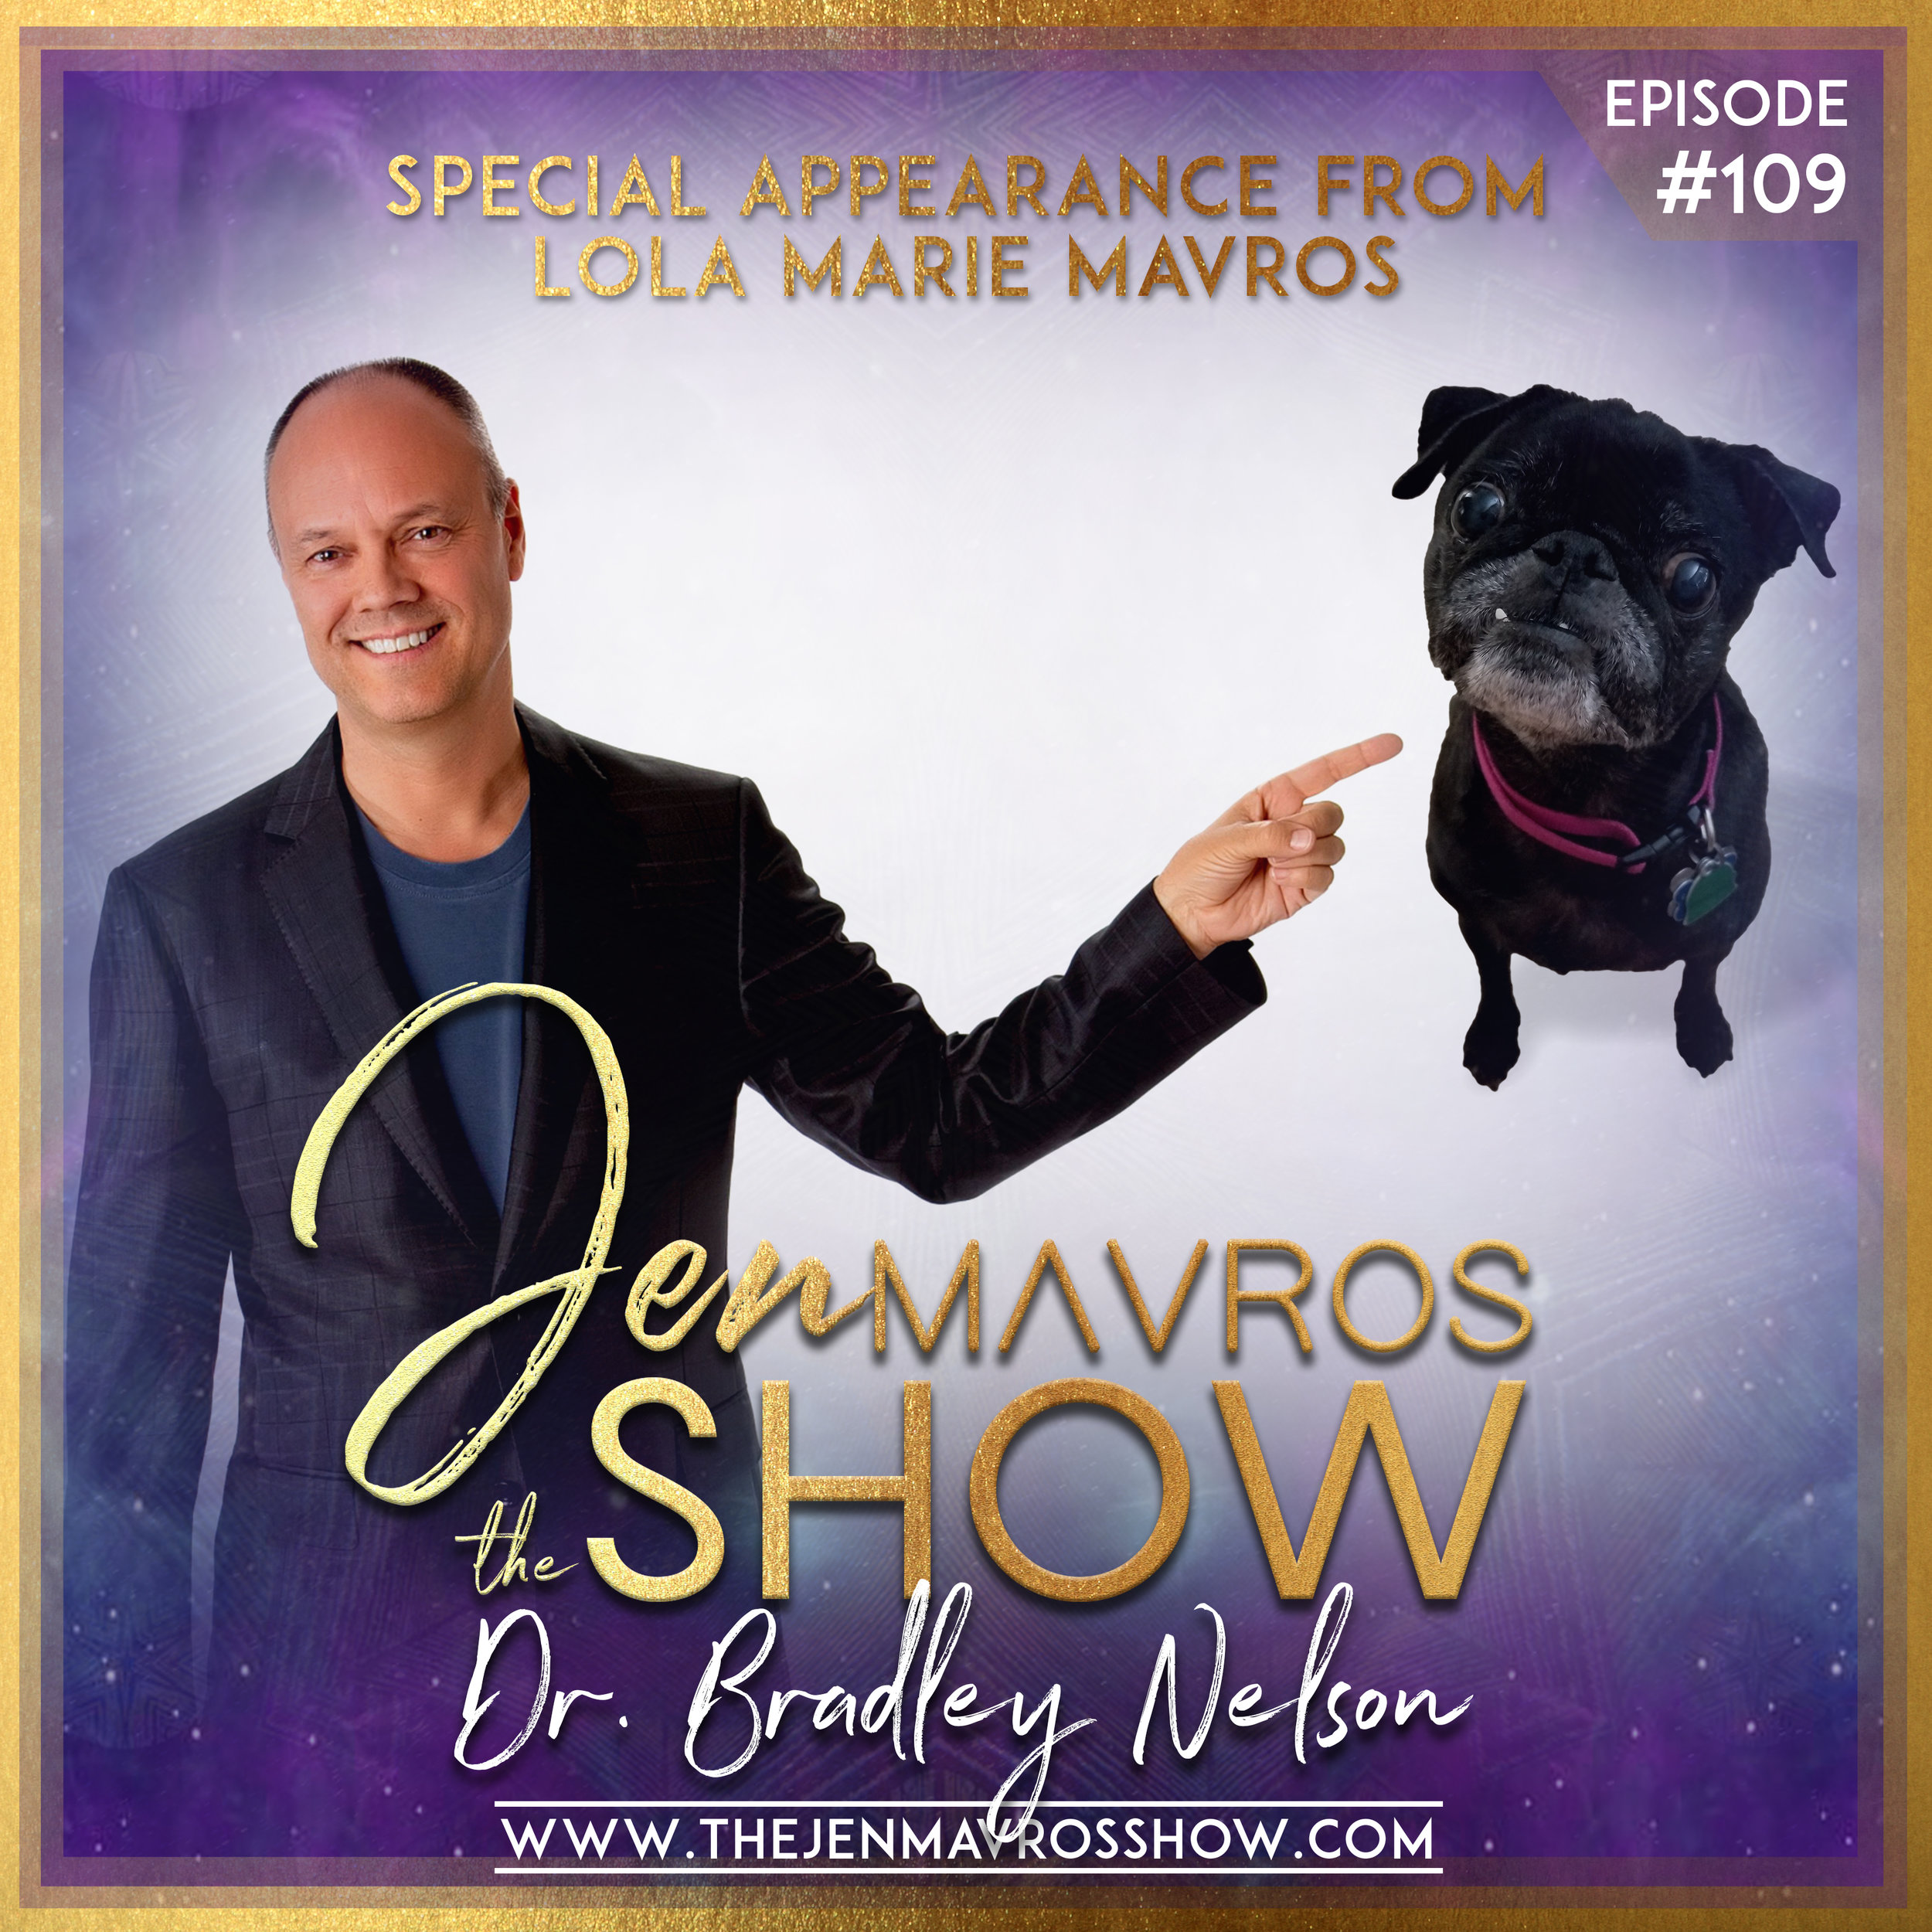 Dr. Bradley Nelson - SPECIAL APPEARANCE FROM LOLA MARIE MAVROSInherited Emotional Baggage - The Animal Edition 🐕